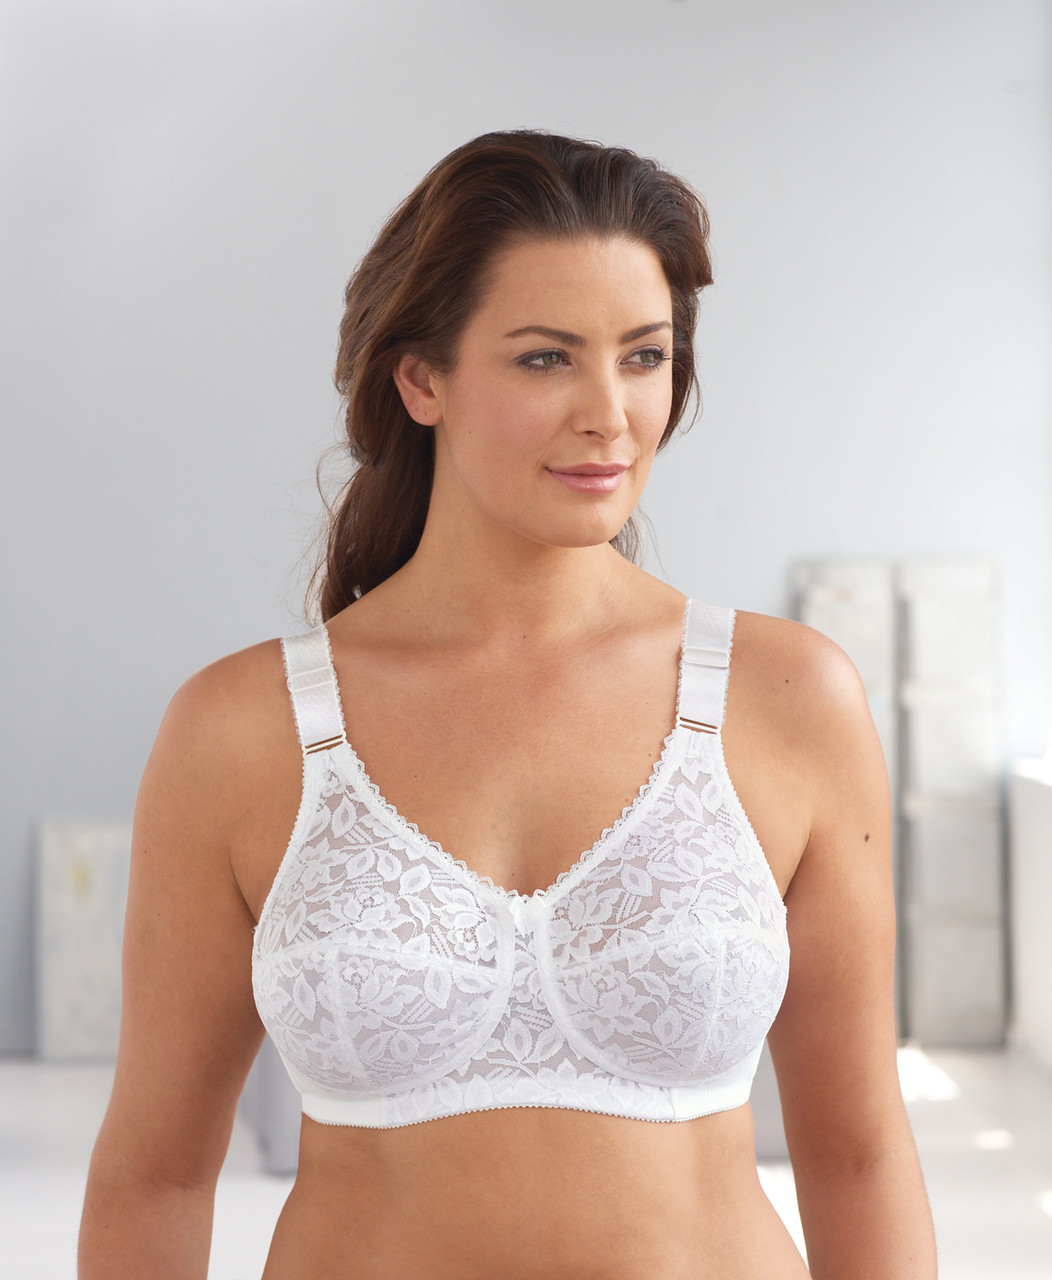 130d2a8449e ... Glamorise Classic Lace Full-Figure Soft Cup Support Bra White. Loading  zoom